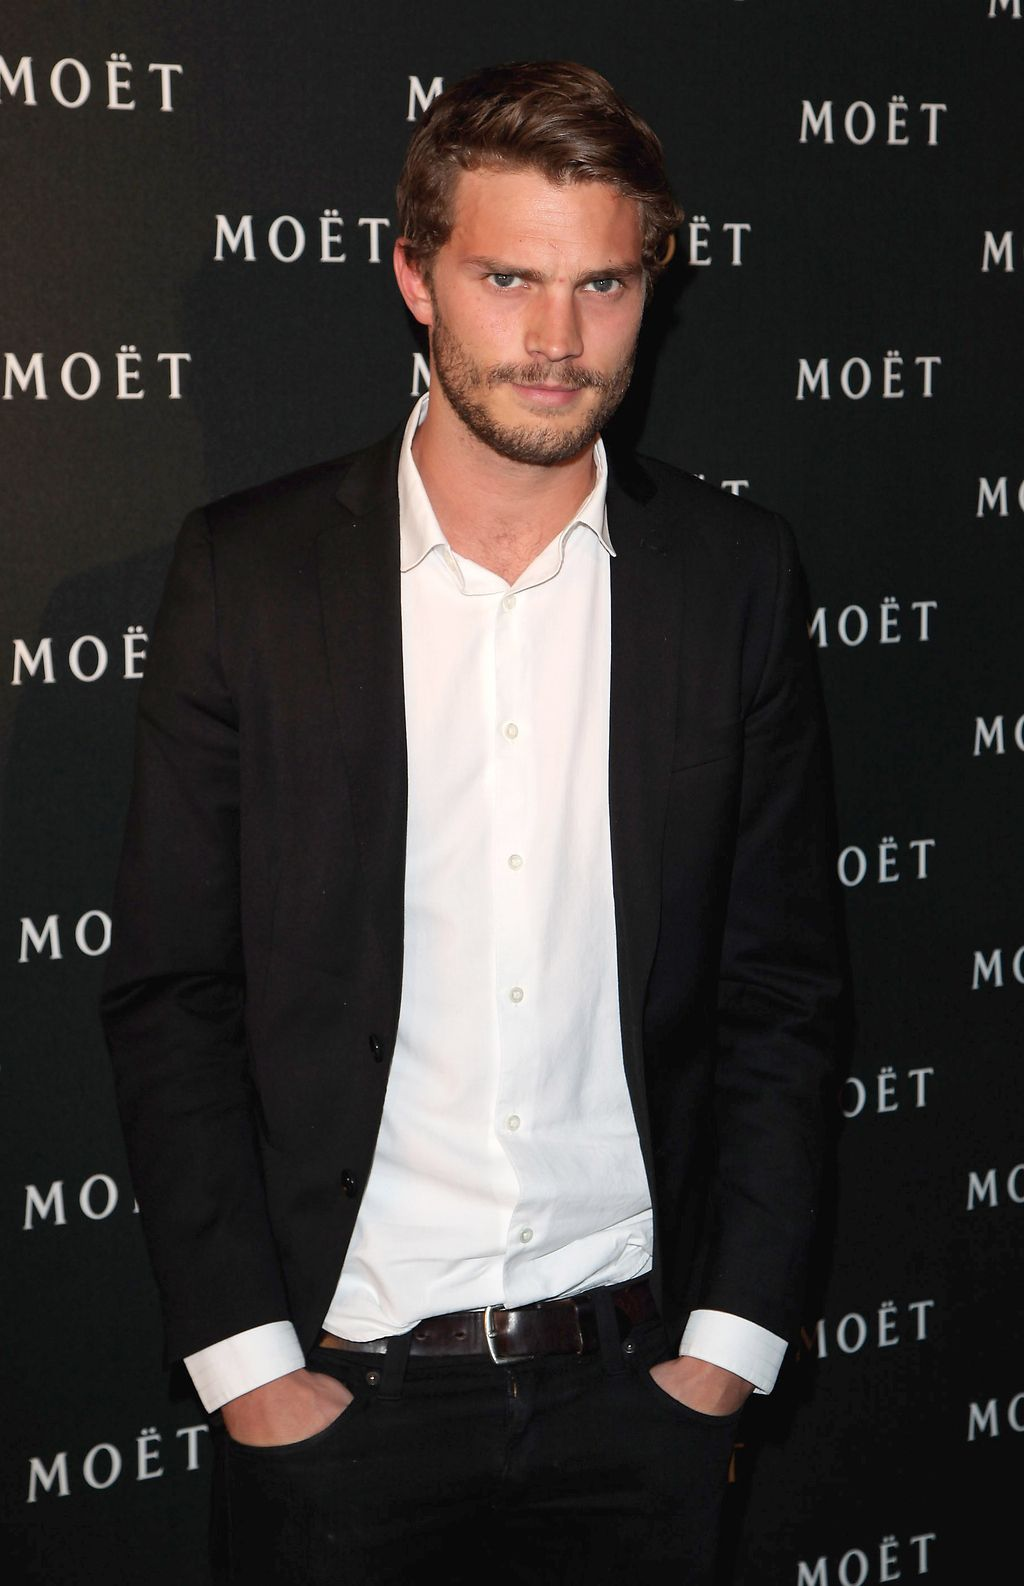 """<b>The insanely hot Irish actor has <a href=""""http://www.buzzfeed.com/adambvary/jamie-dornan-christian-grey-fifty-shades-of-grey"""">reportedly</a> landed the role and he'll make you forget that Charlie Hunnam ever existed.</b>"""